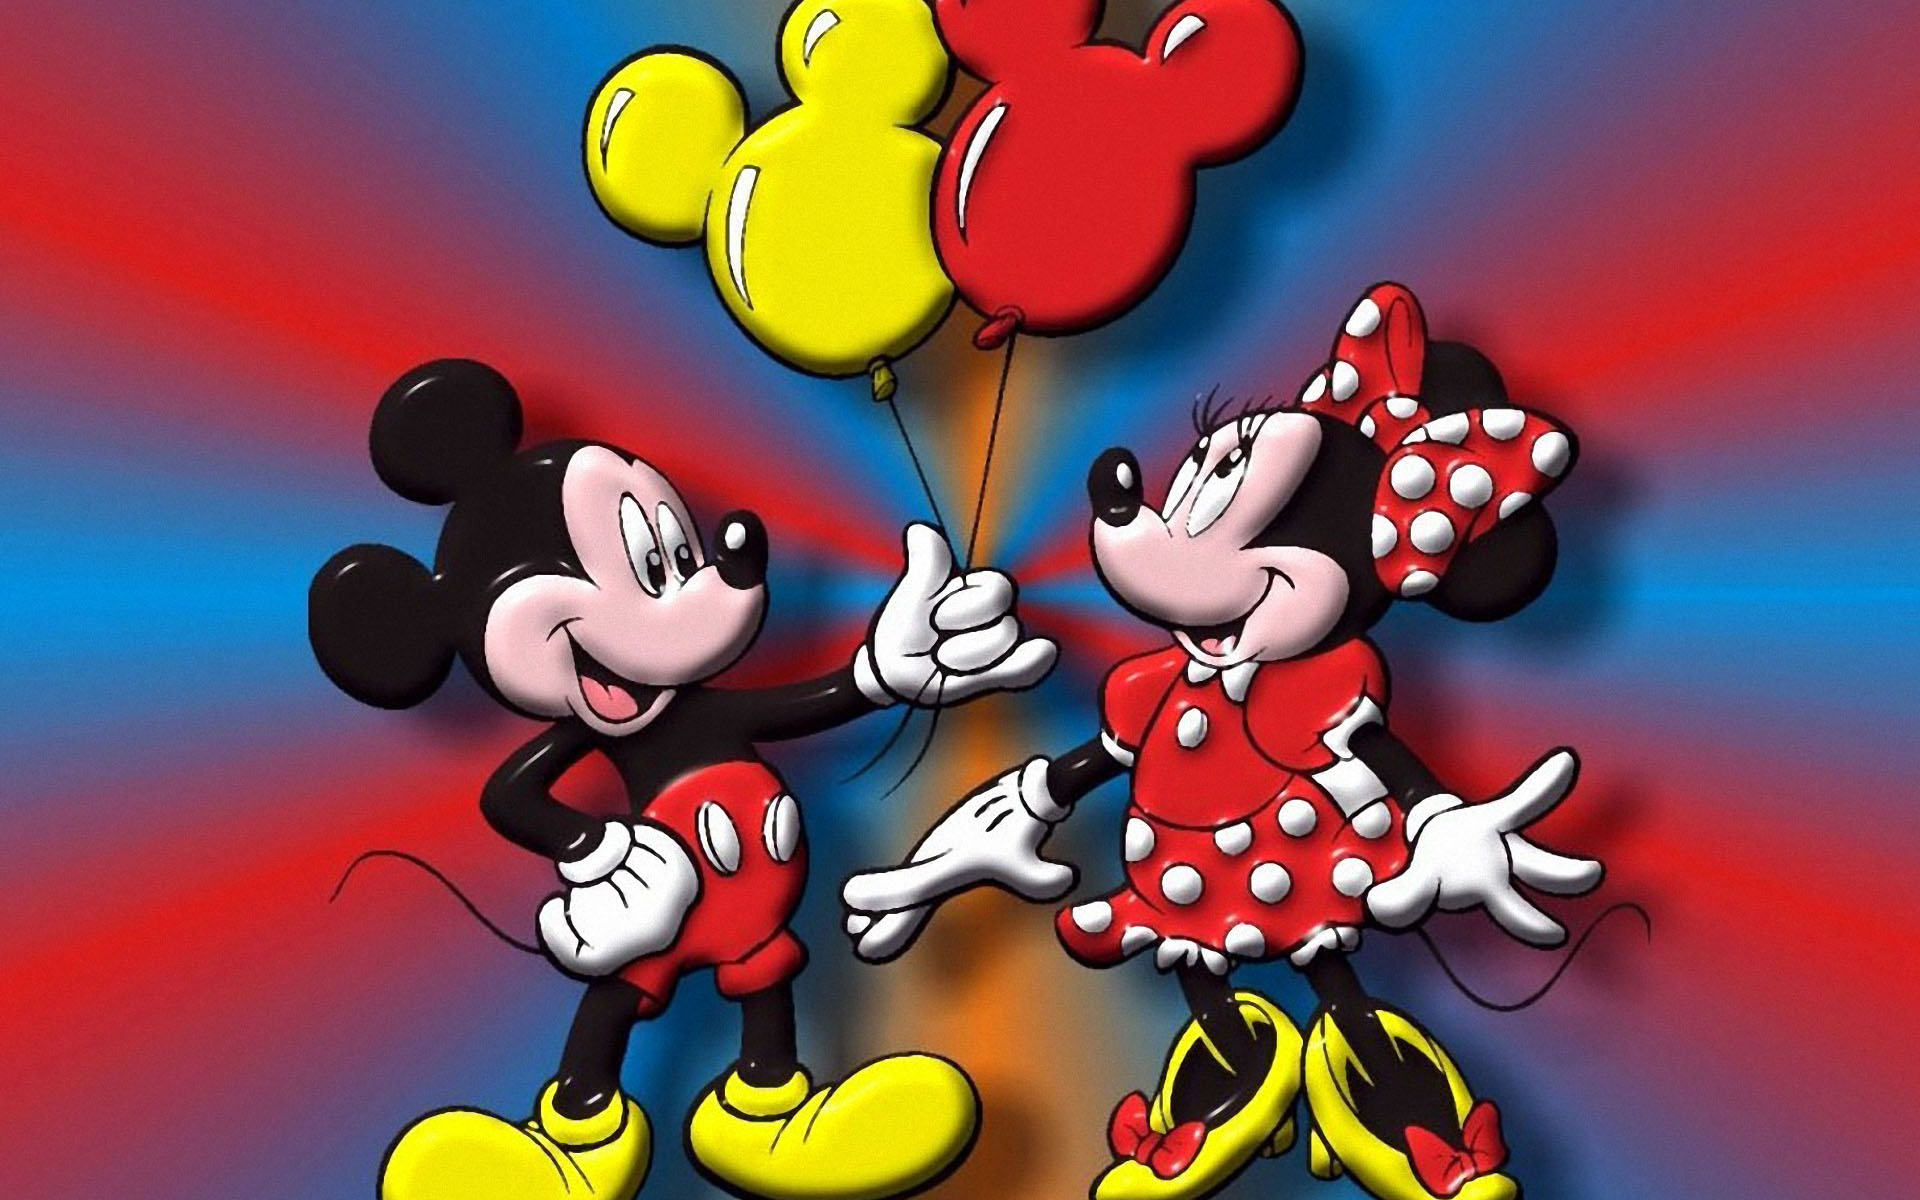 Mickey and Minnie 1920x1200 Wallpapers 1920x1200 Wallpapers 1920x1200